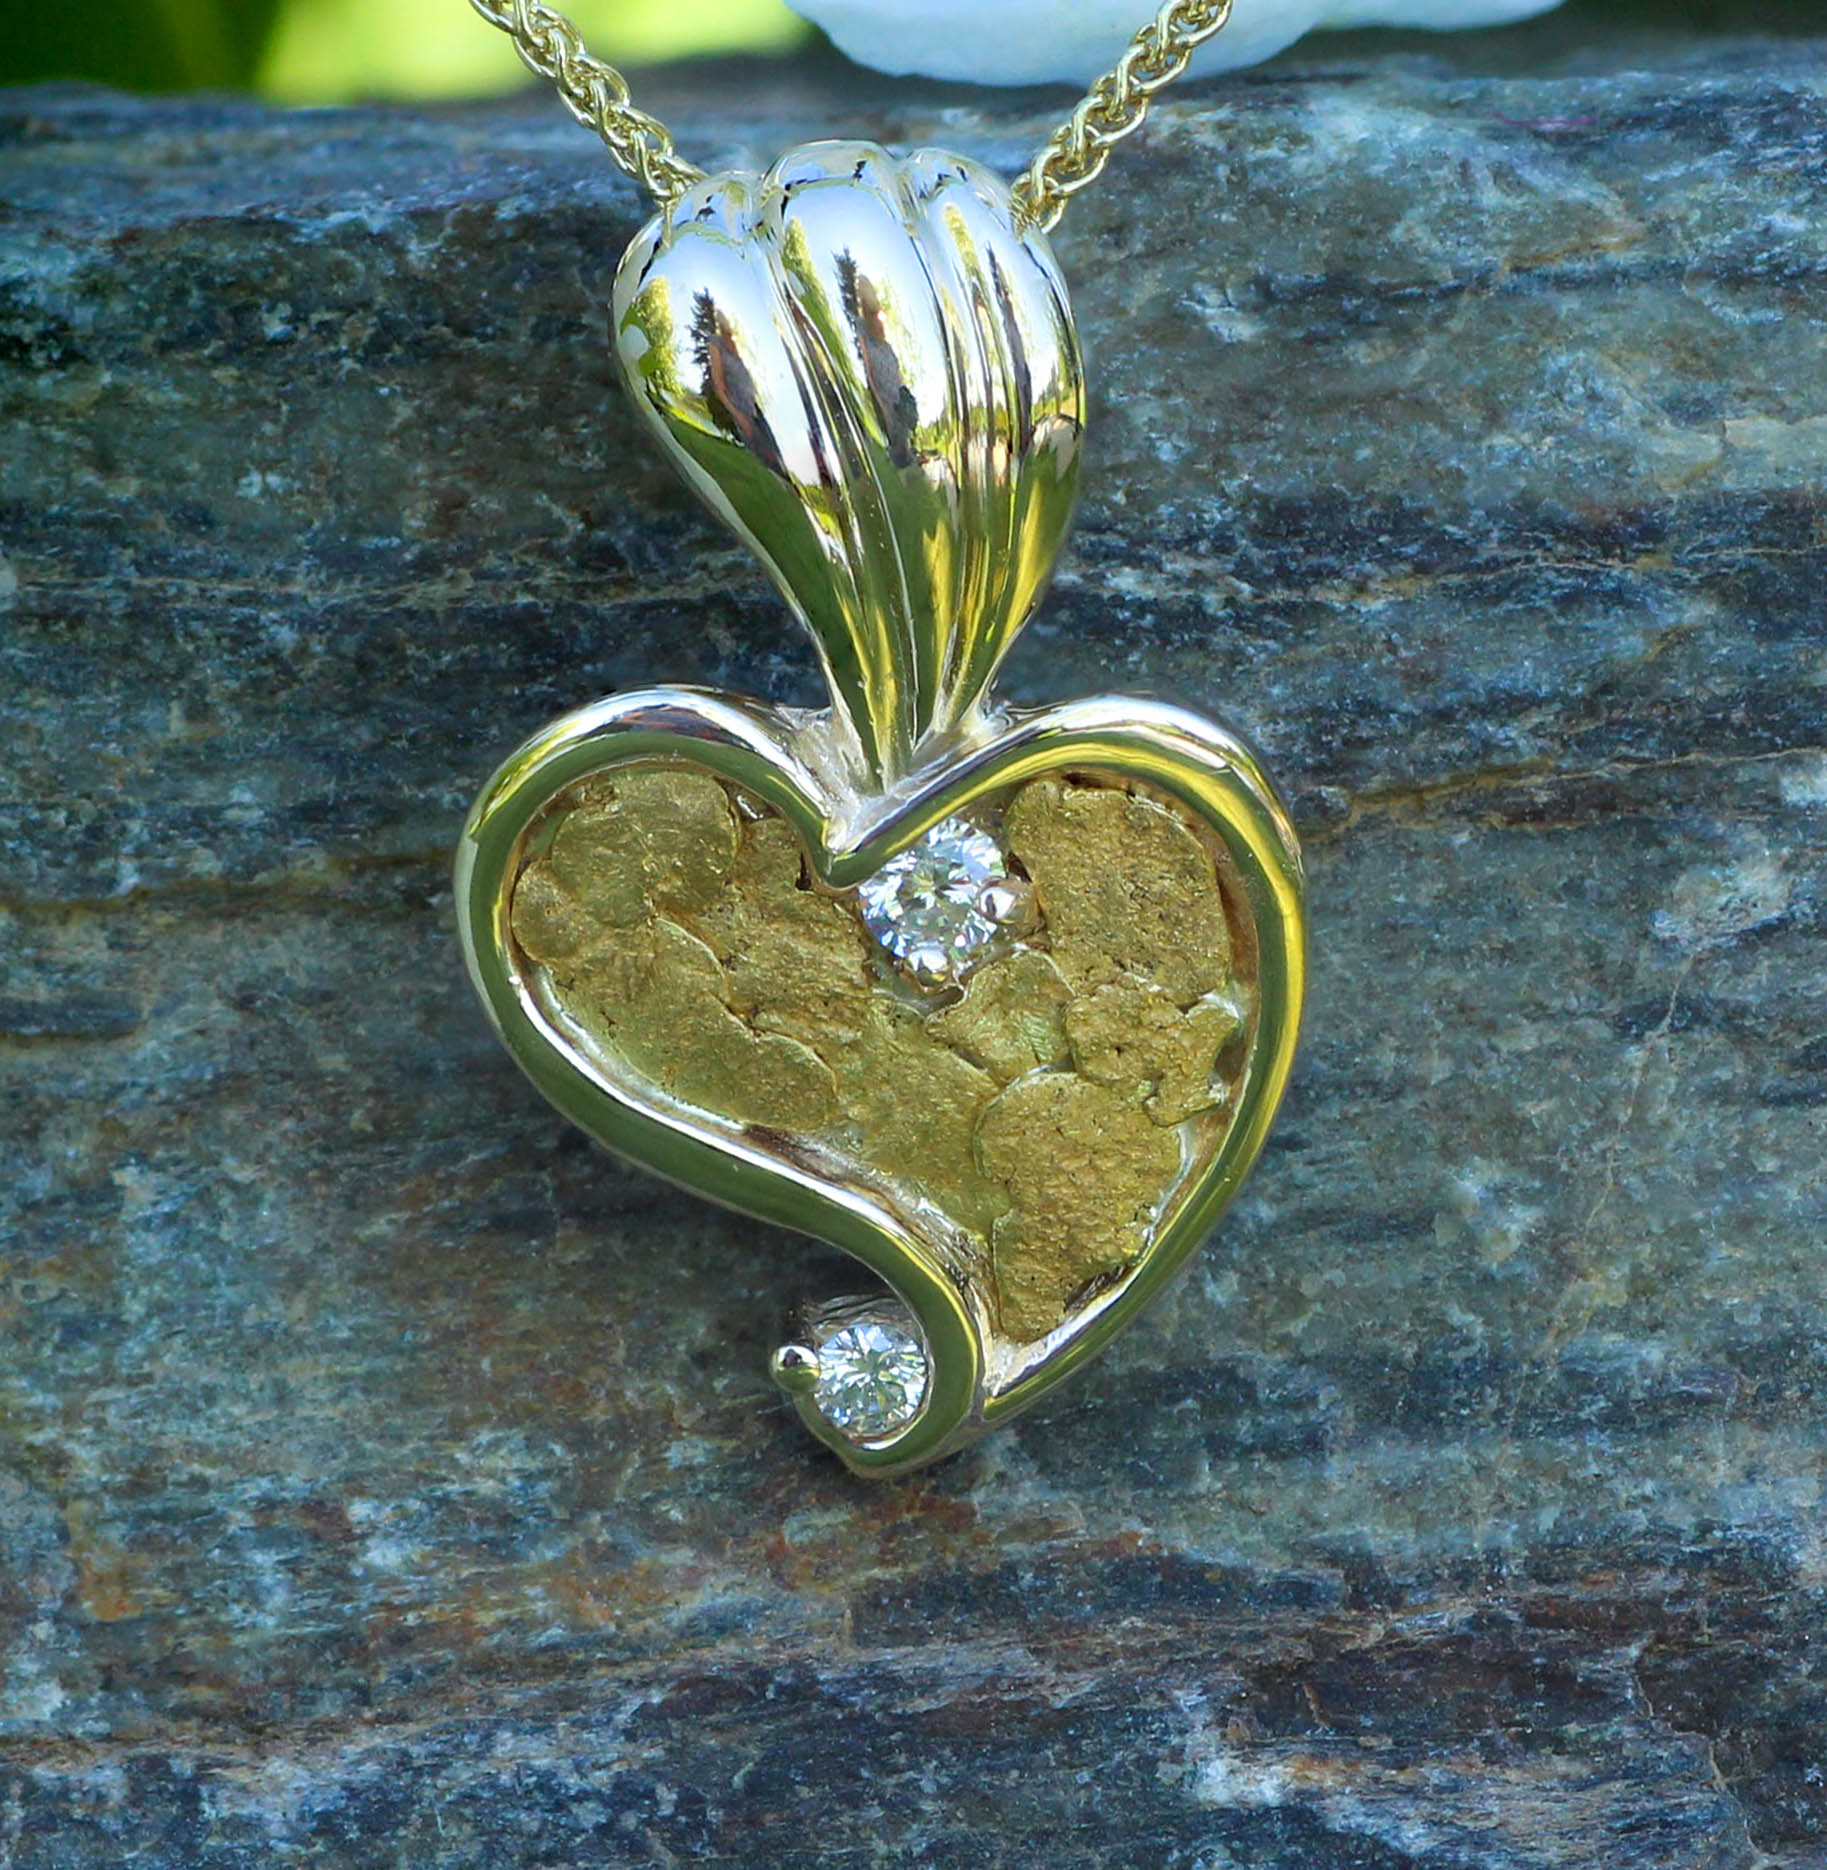 Alaskan Gold Nugget Diamond Heart Pendant.